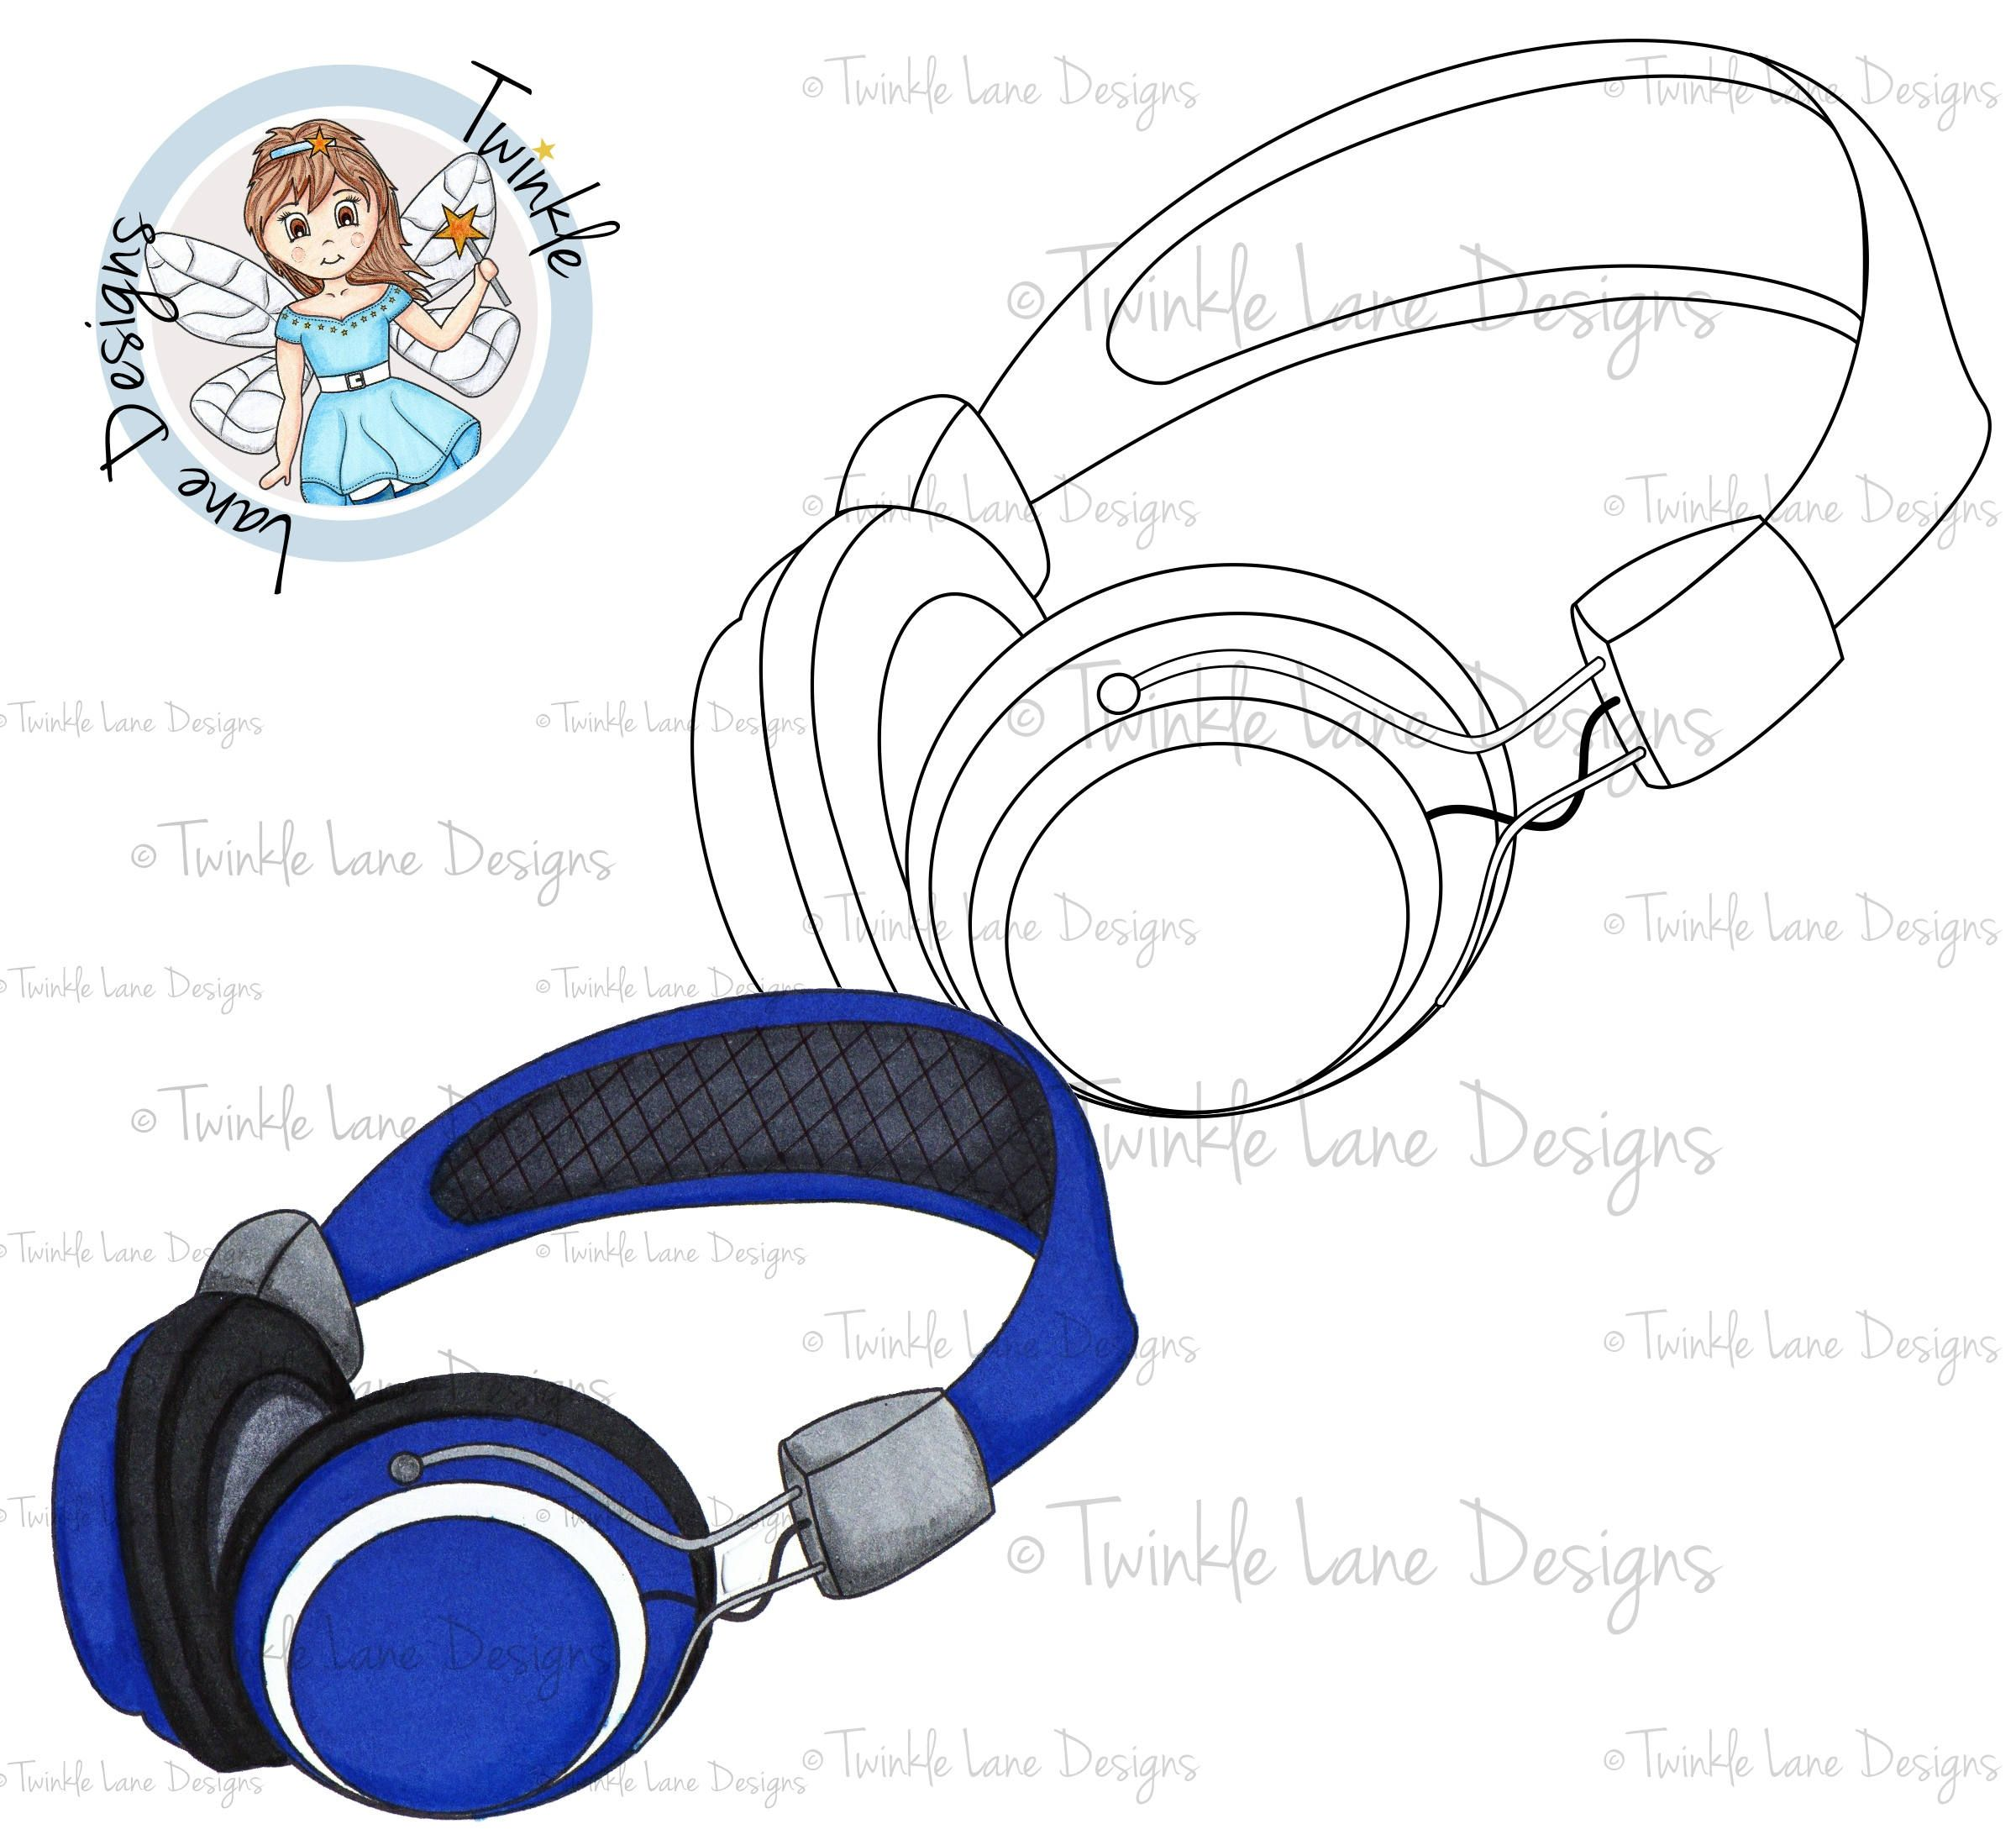 Headphones Digi Stamp Earphones Digital Music Audio Adult Colouring Page A5 Sheet Papercraft For Him Her Clipart